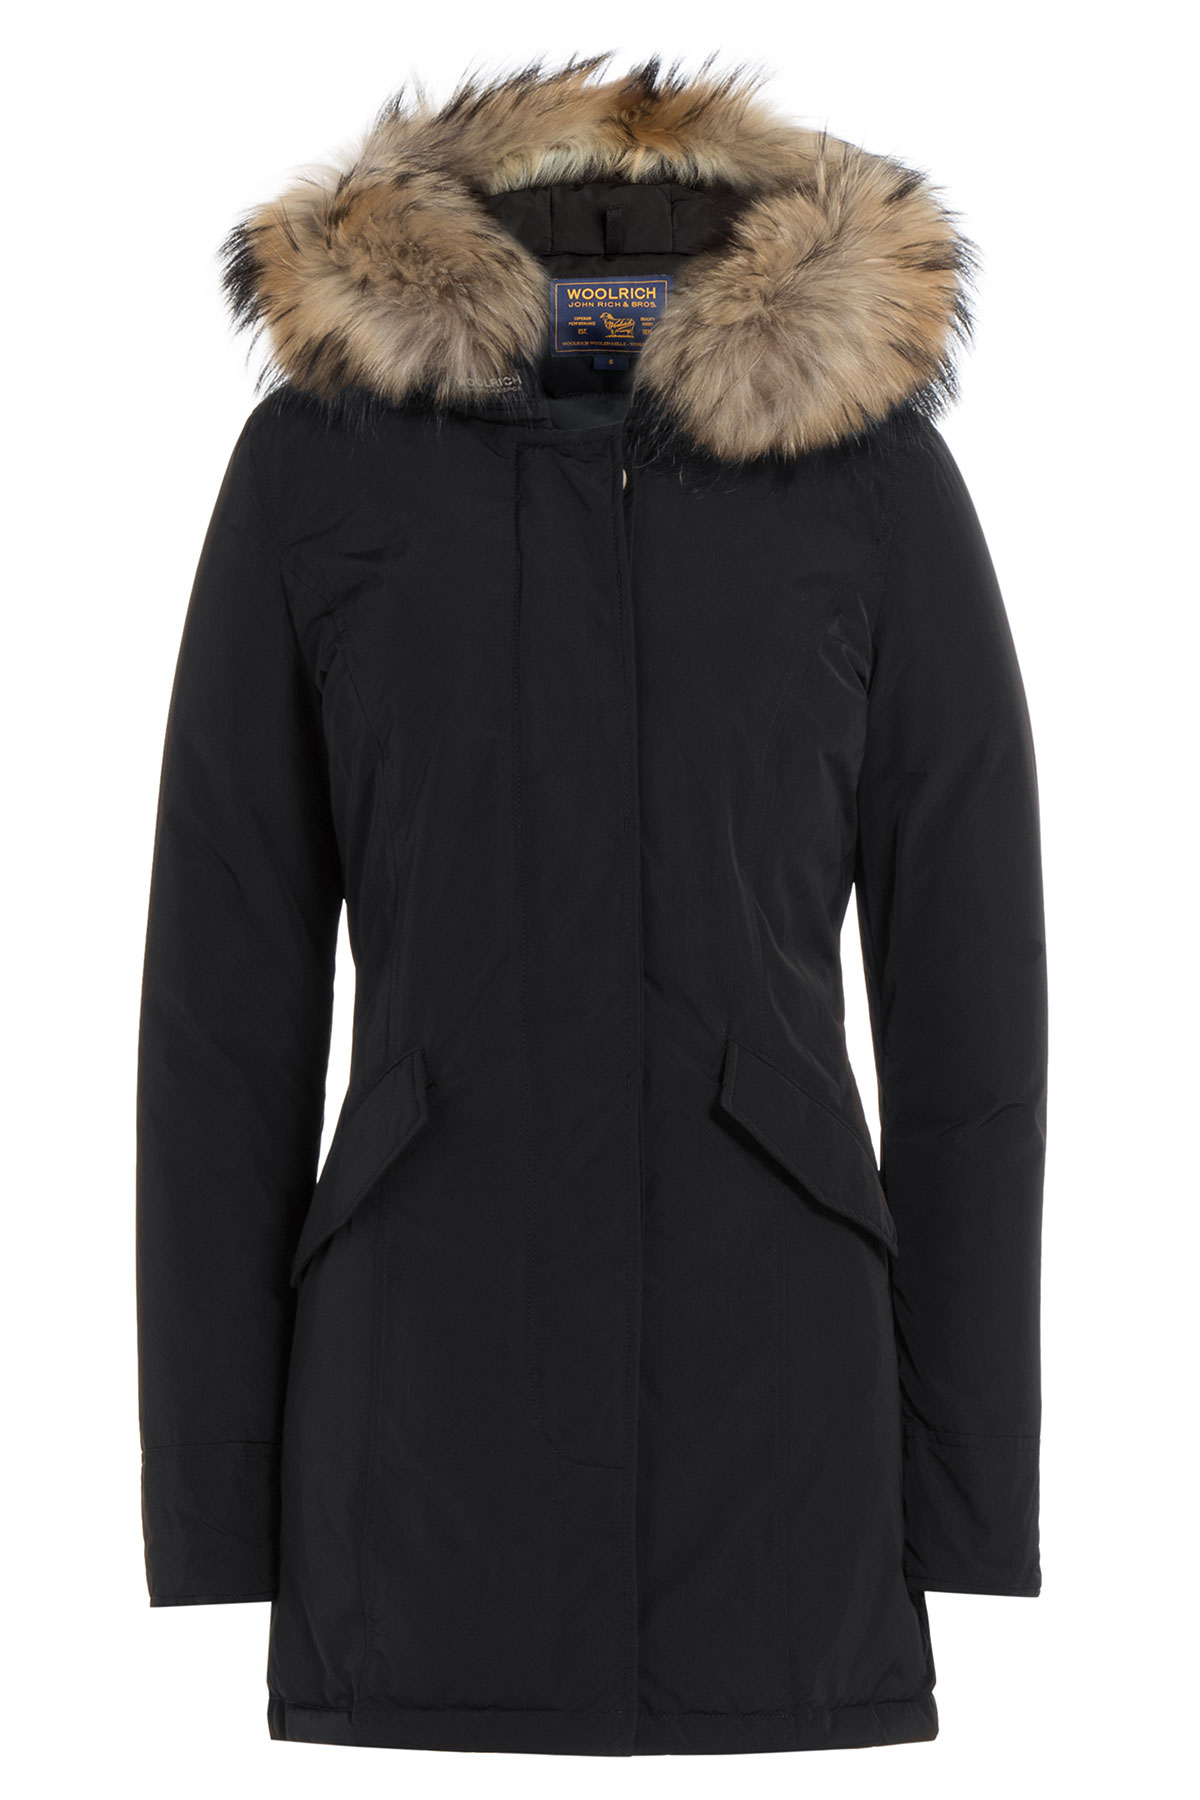 woolrich luxury arctic down parka with fur trimmed hood black in black lyst. Black Bedroom Furniture Sets. Home Design Ideas